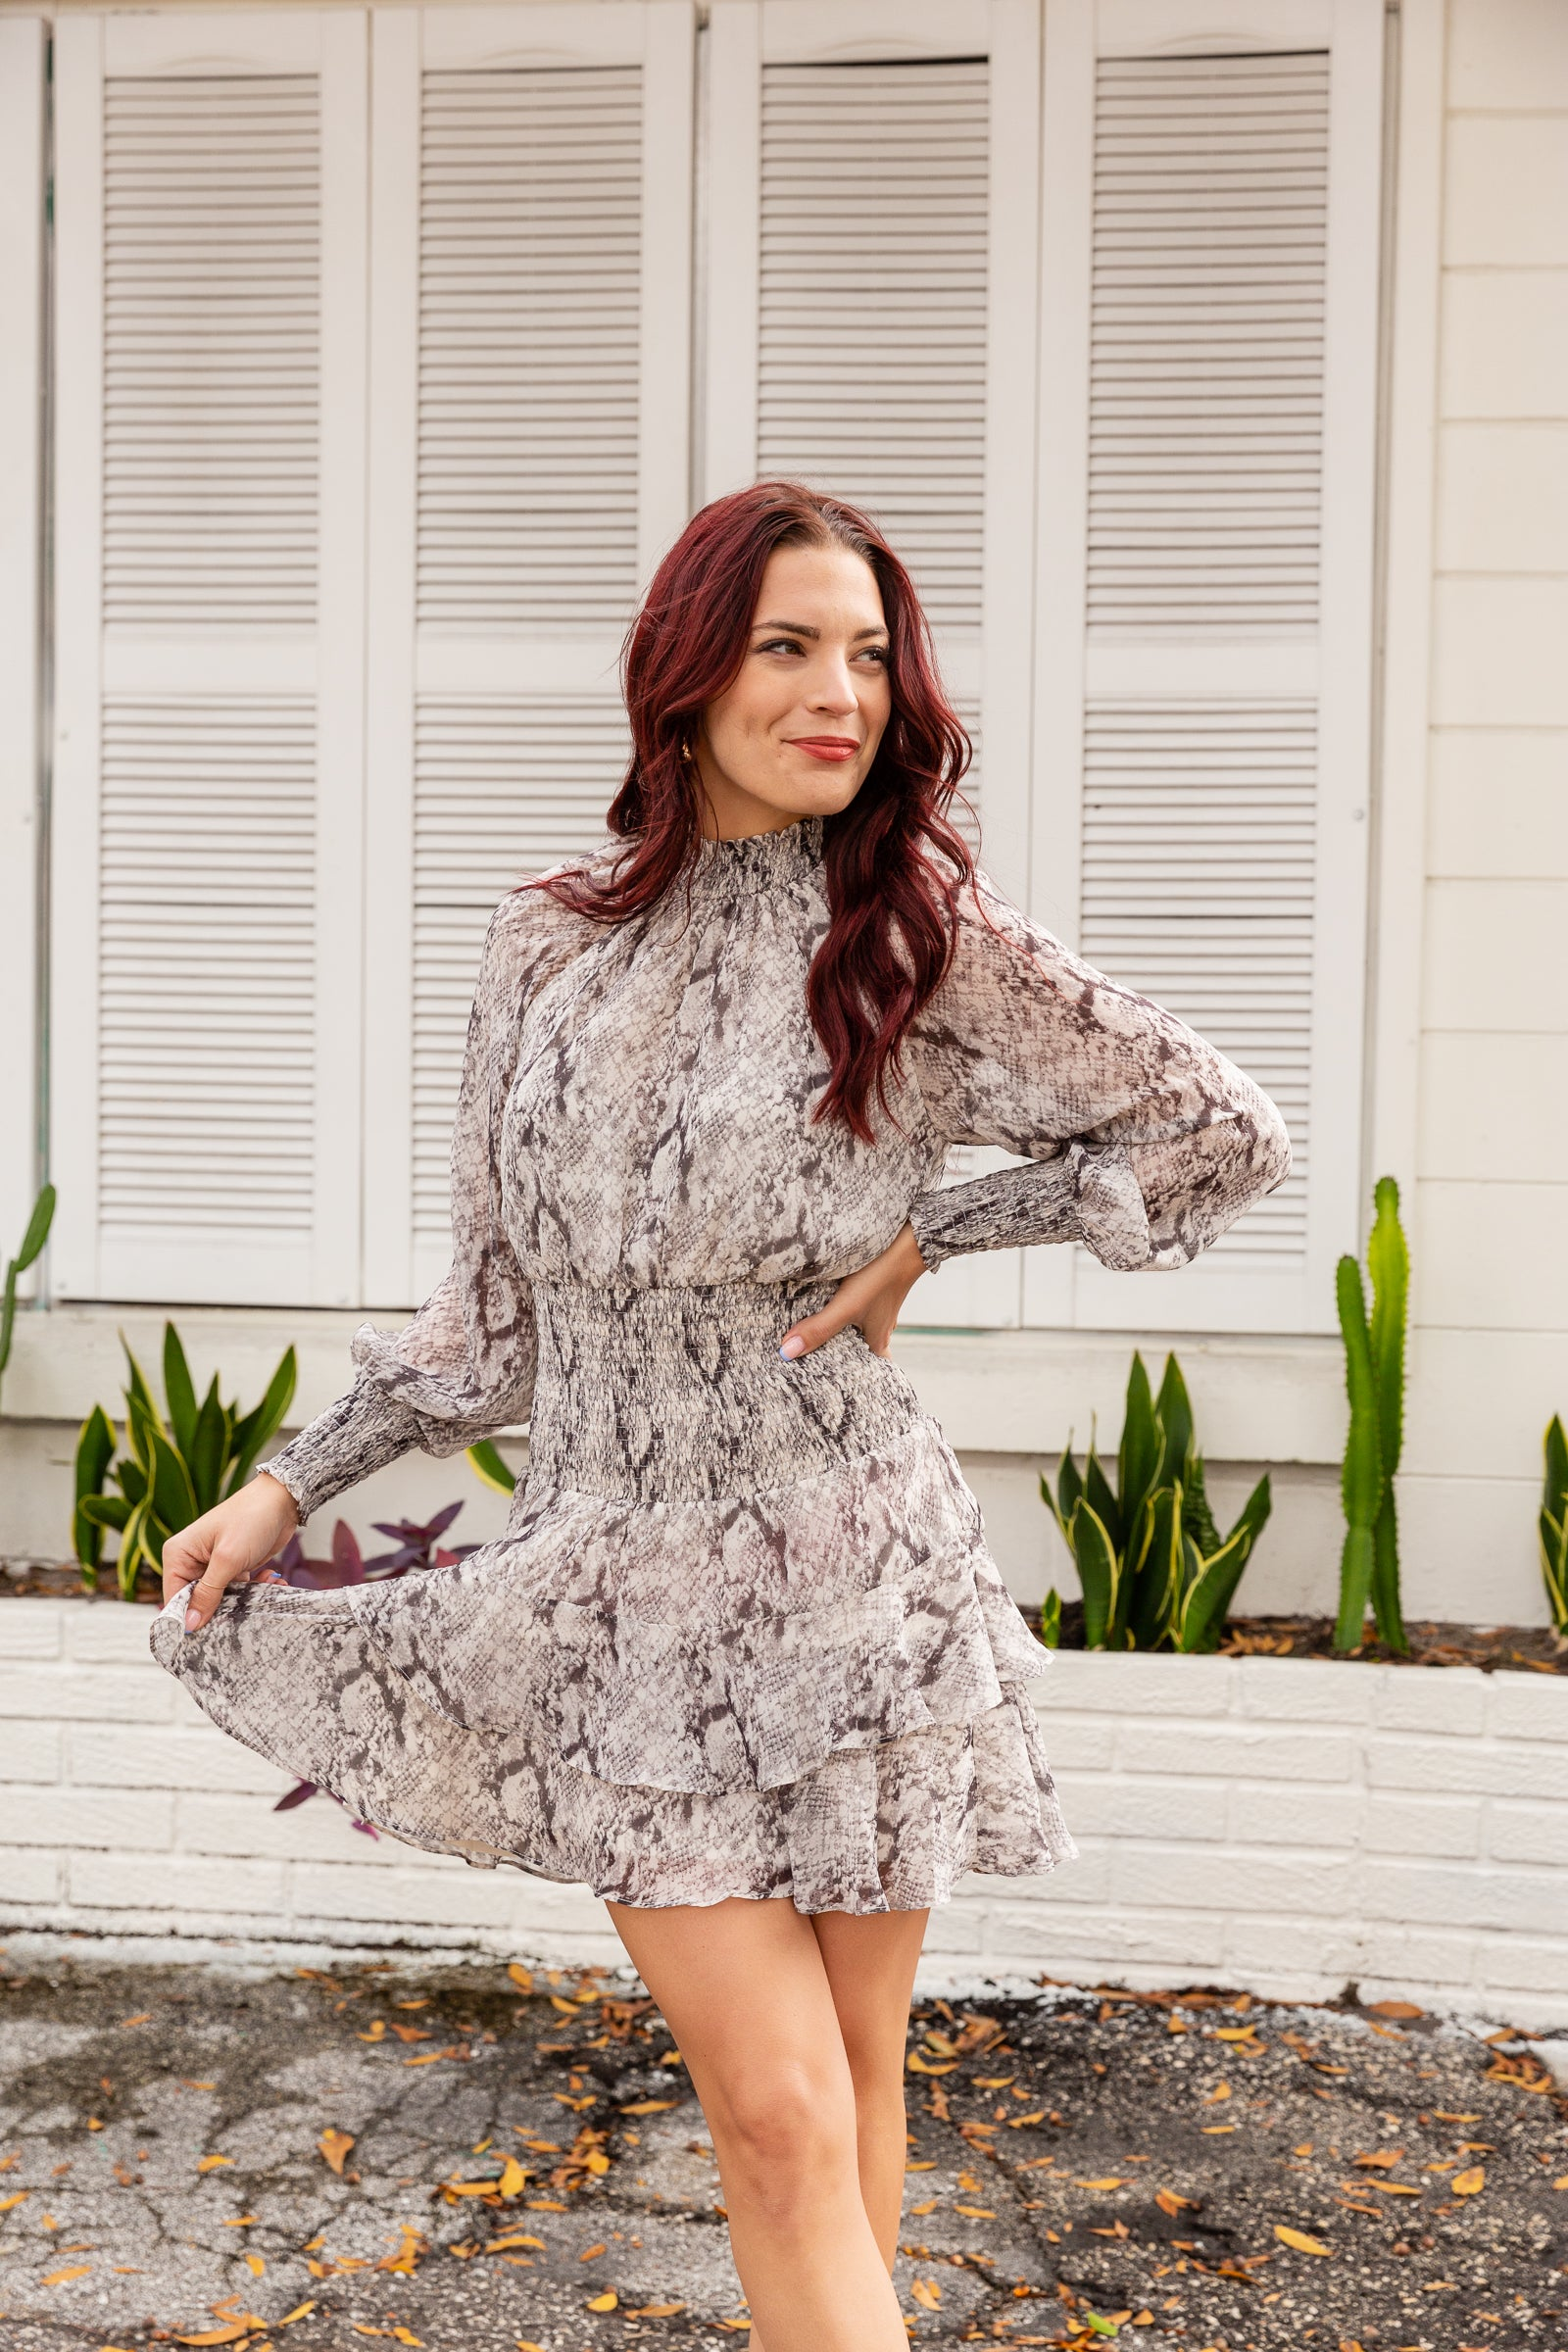 Long smock cuffed sleeves attach to a smocked mock neckline on a relaxed fit bodice before meeting a smocked waistband and flowing down into a ruffle layered mini skirt.